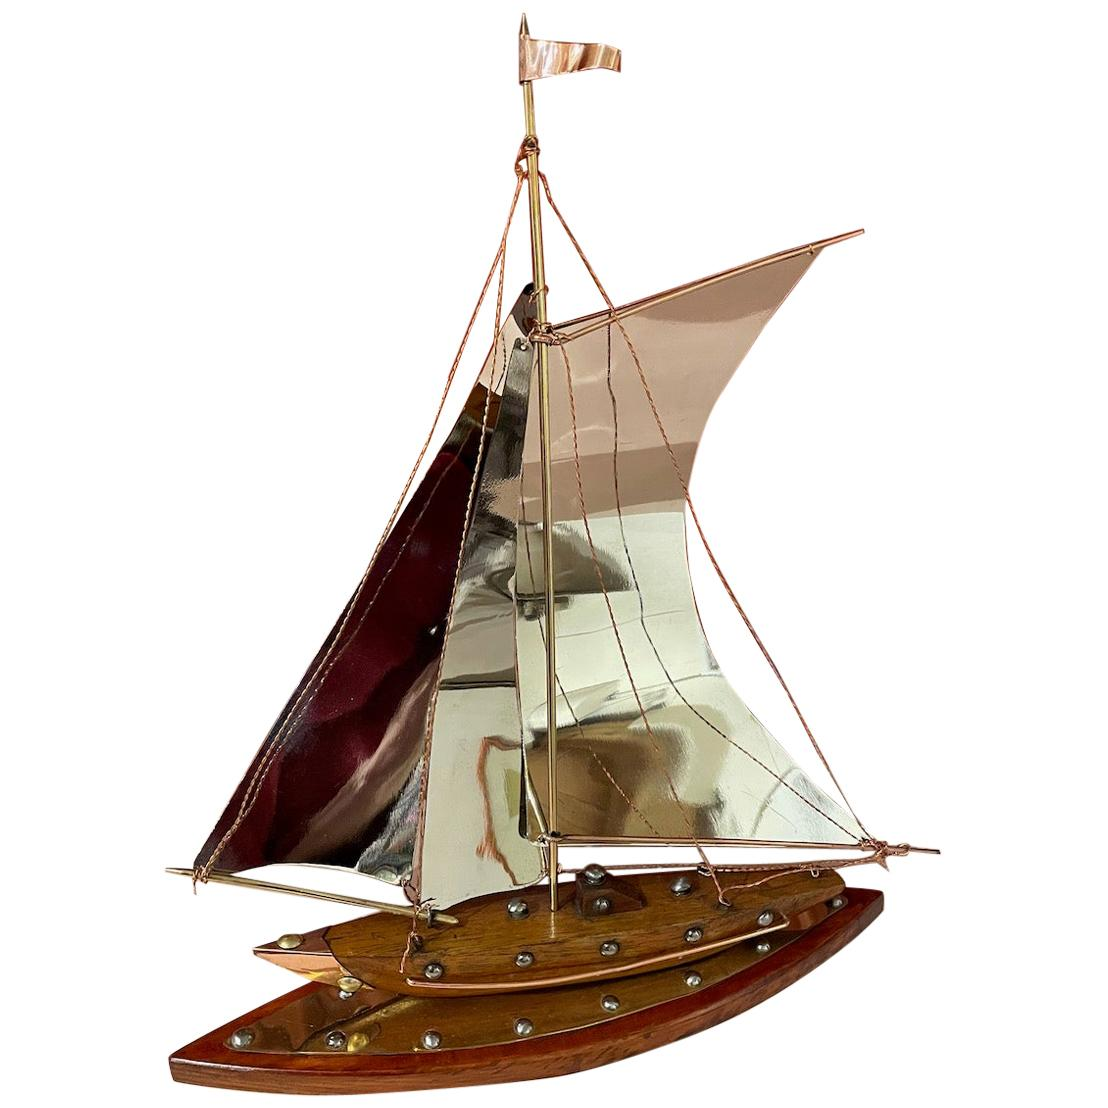 Art Deco Copper, Chrome, Brass and Wooden Sailing Boat Sculpture